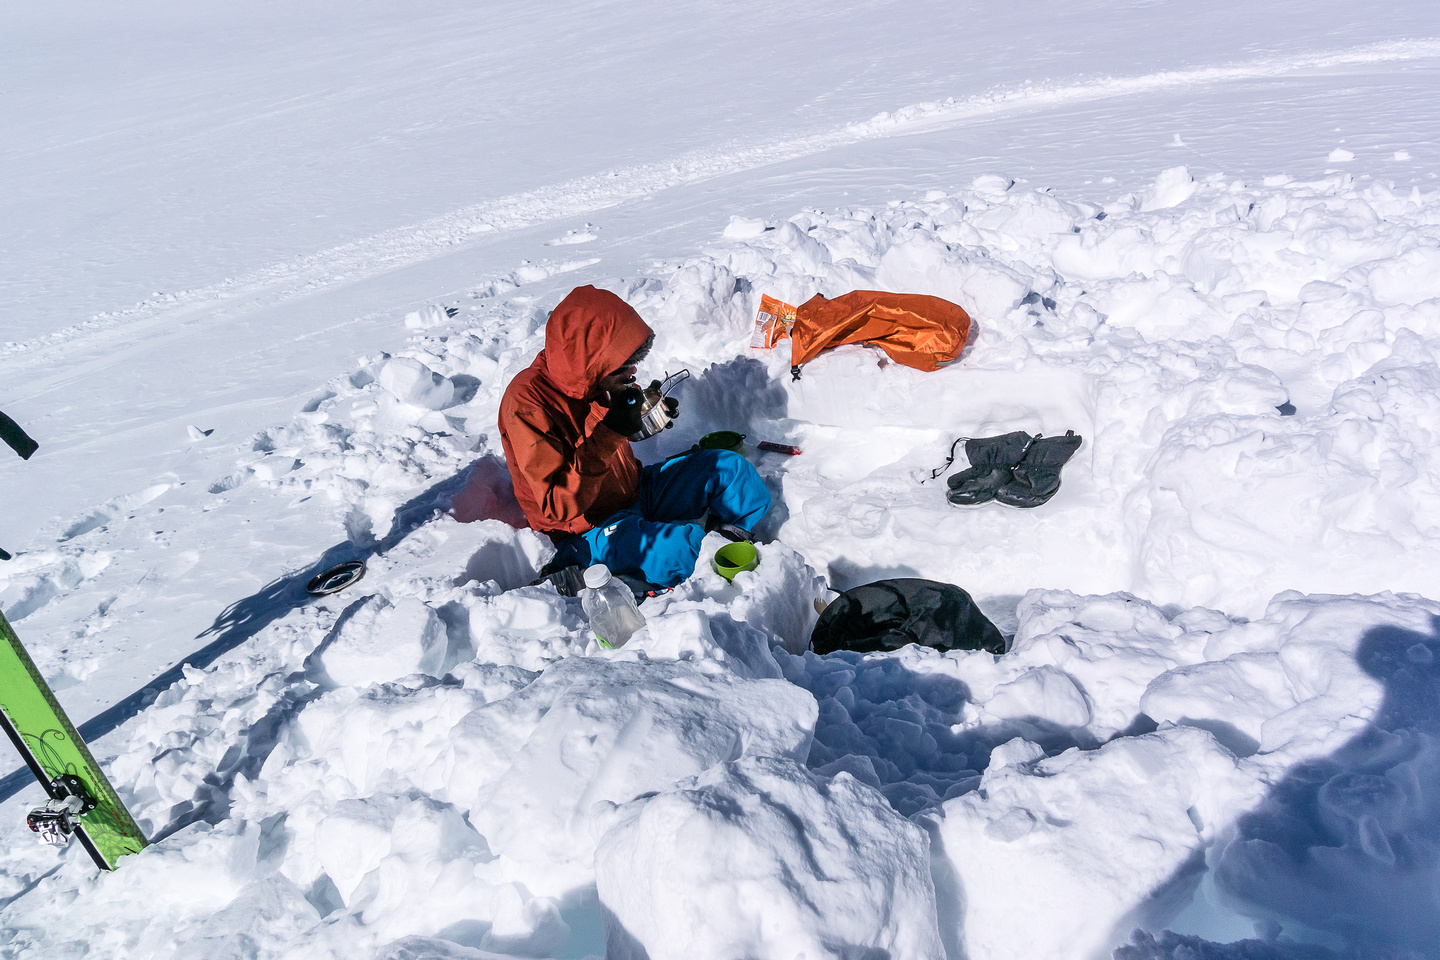 Ben enjoys a late lunch after ascending Snow Dome.